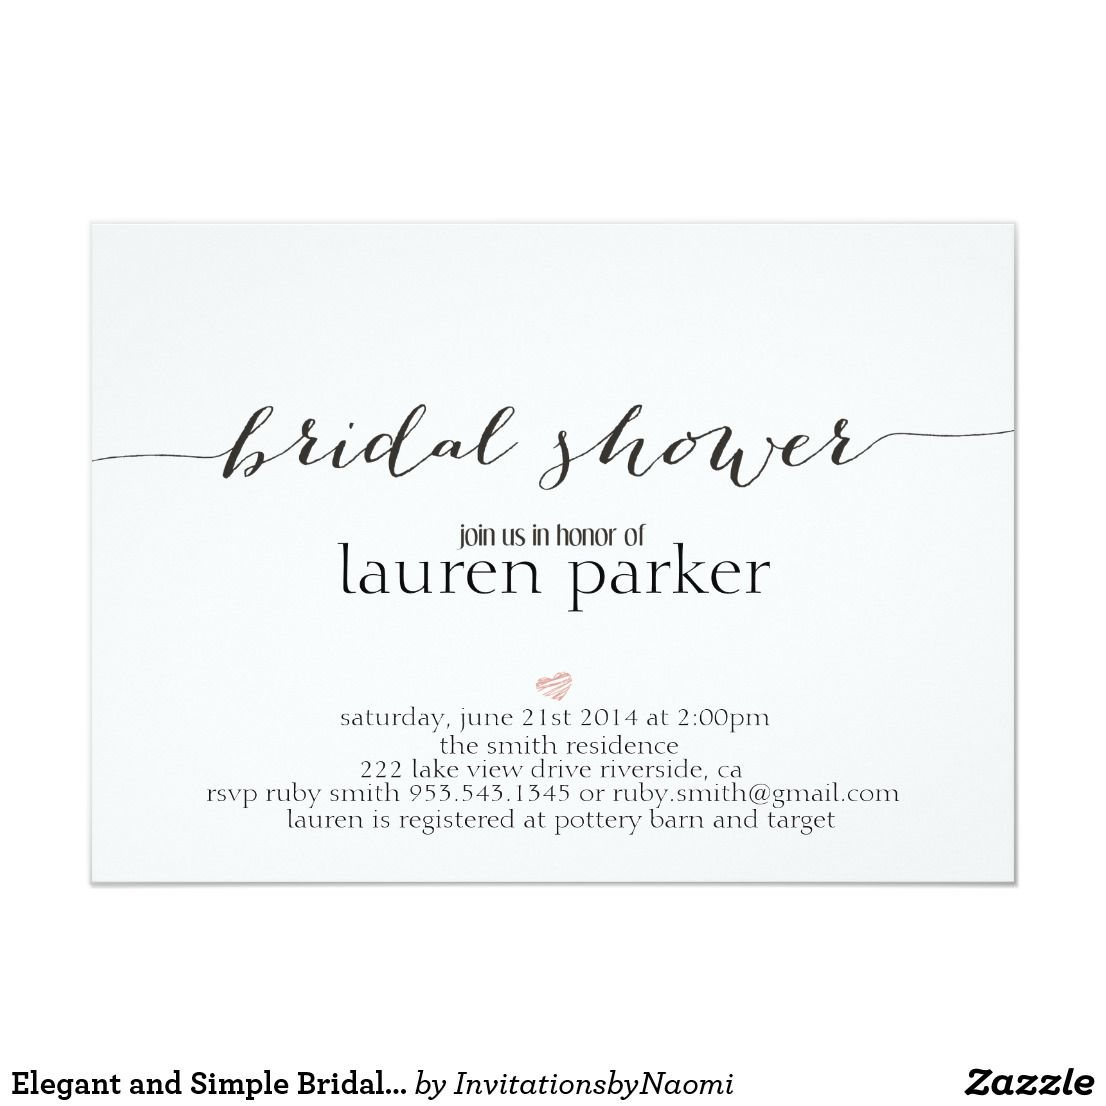 Elegant And Simple Bridal Shower Invitation Zazzle Com With